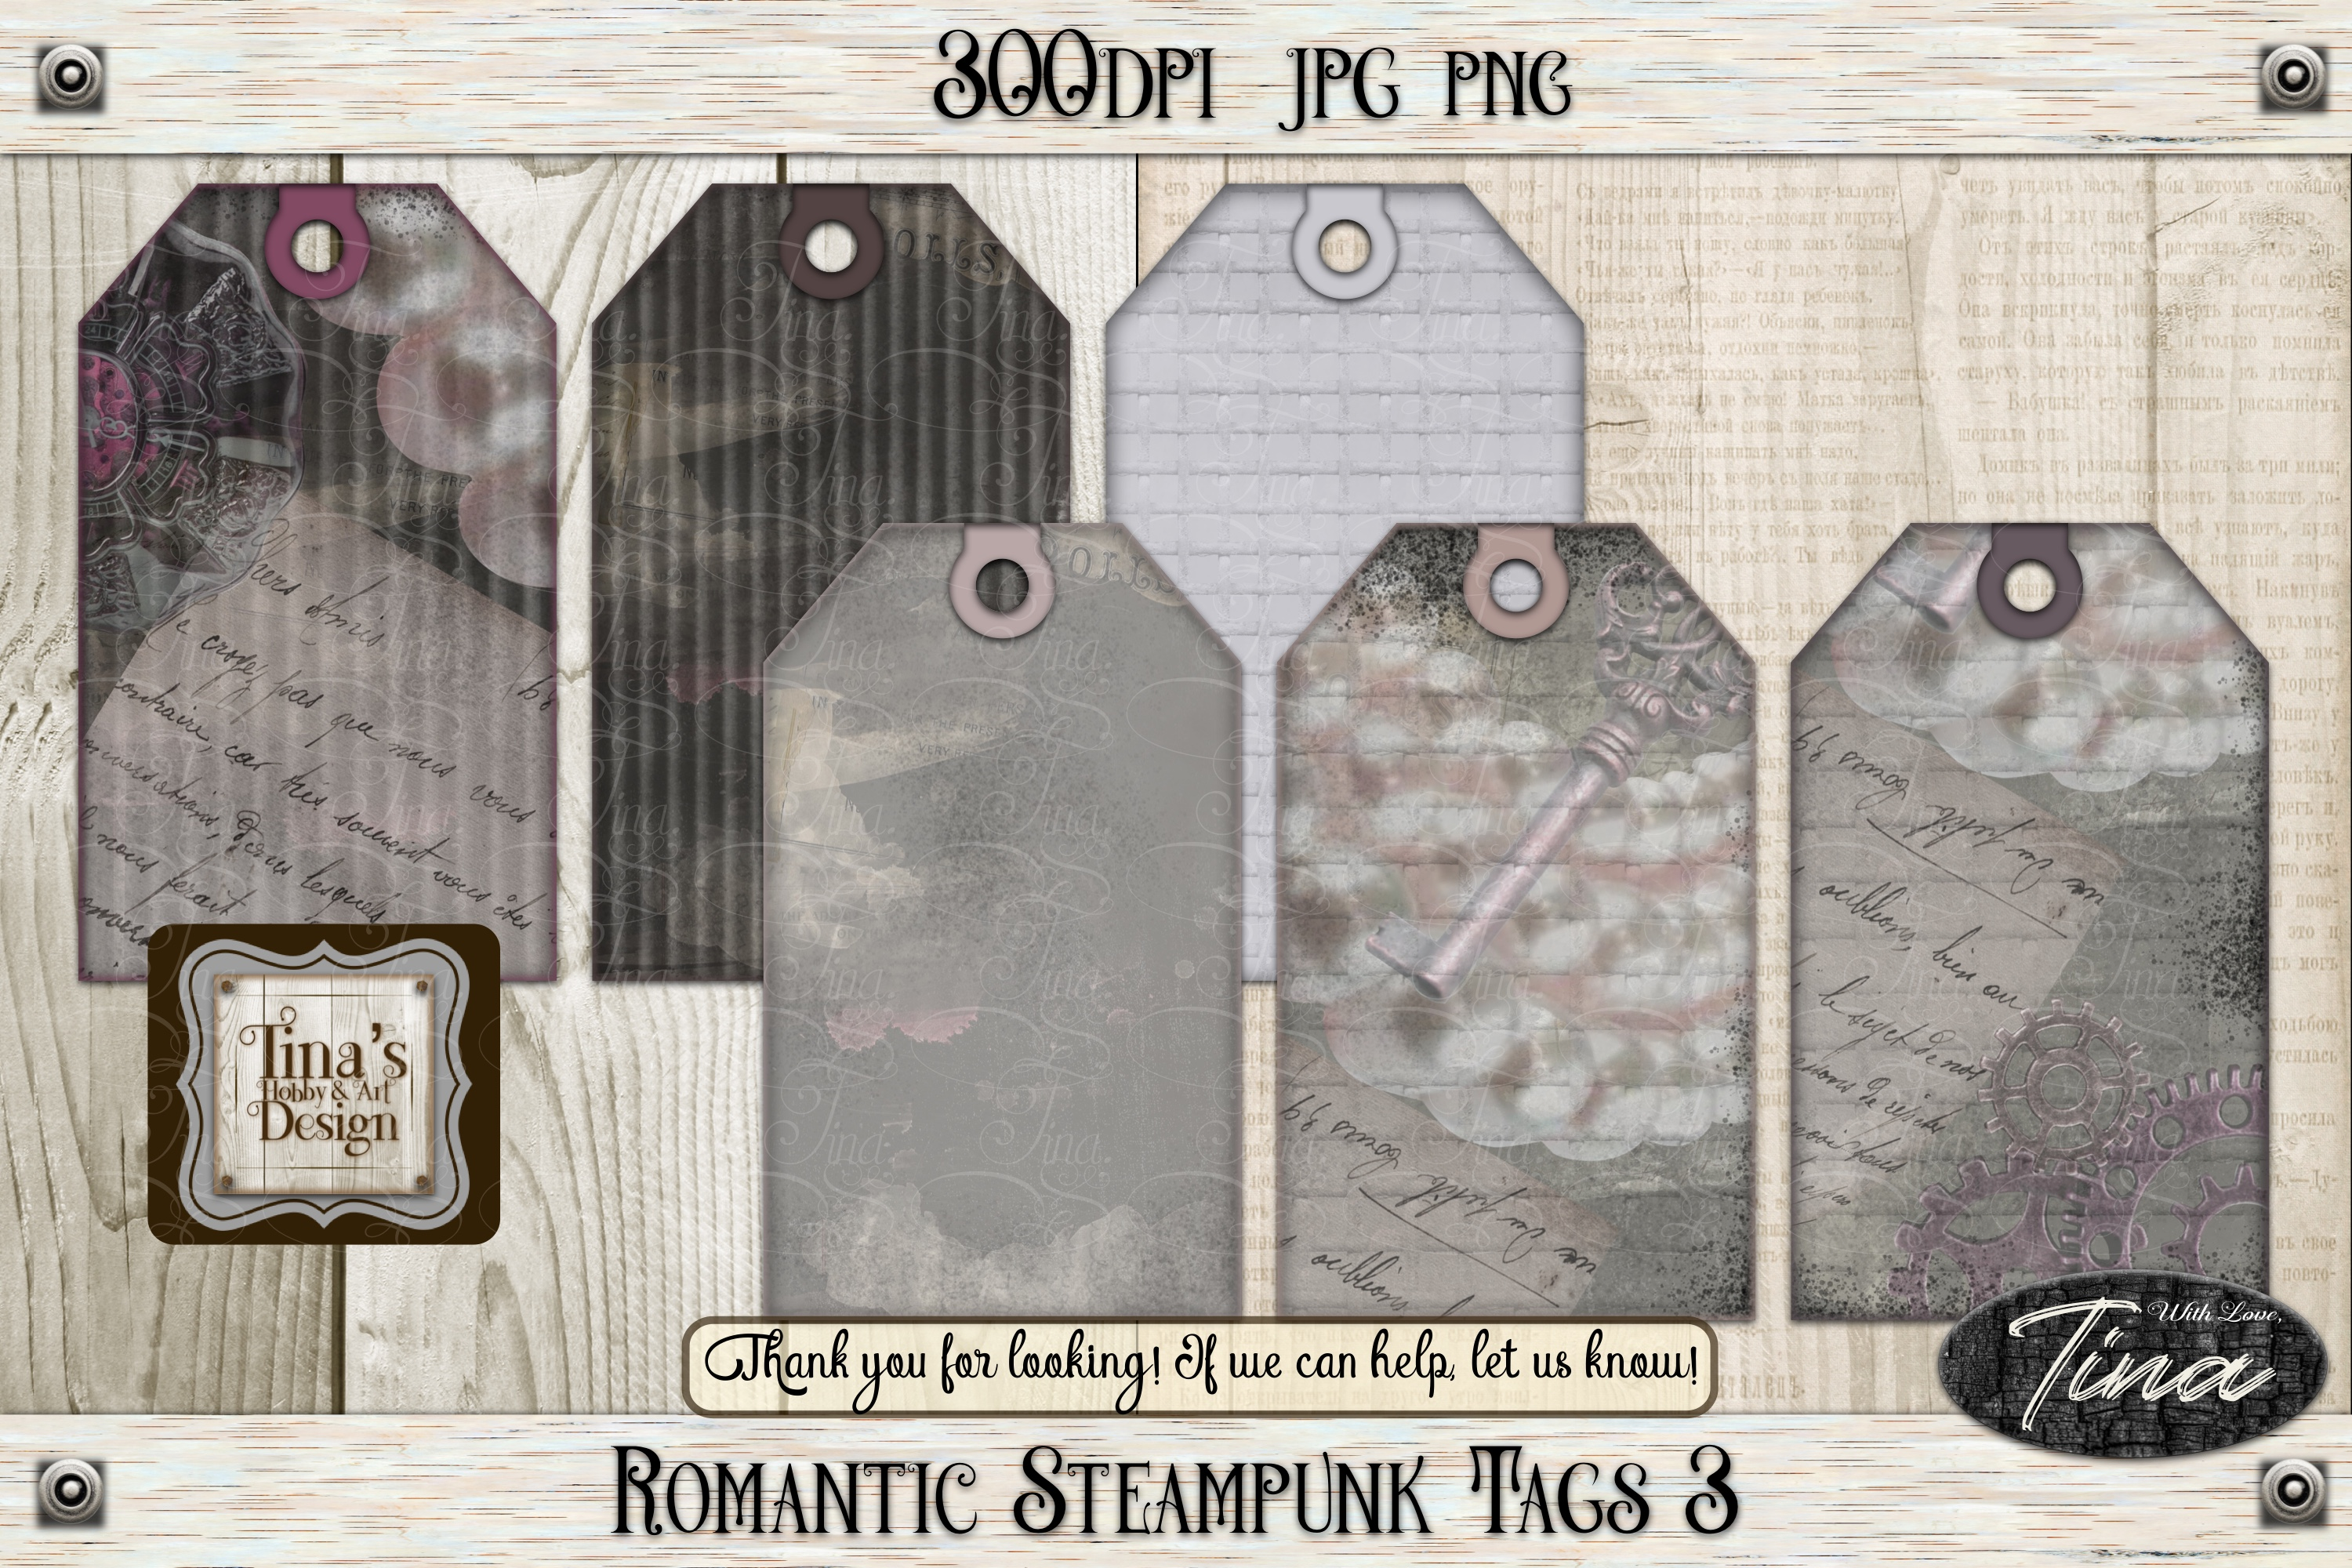 Romantic Steampunk Tags 1 Collage Mauve Grunge 101918RST1 example image 5